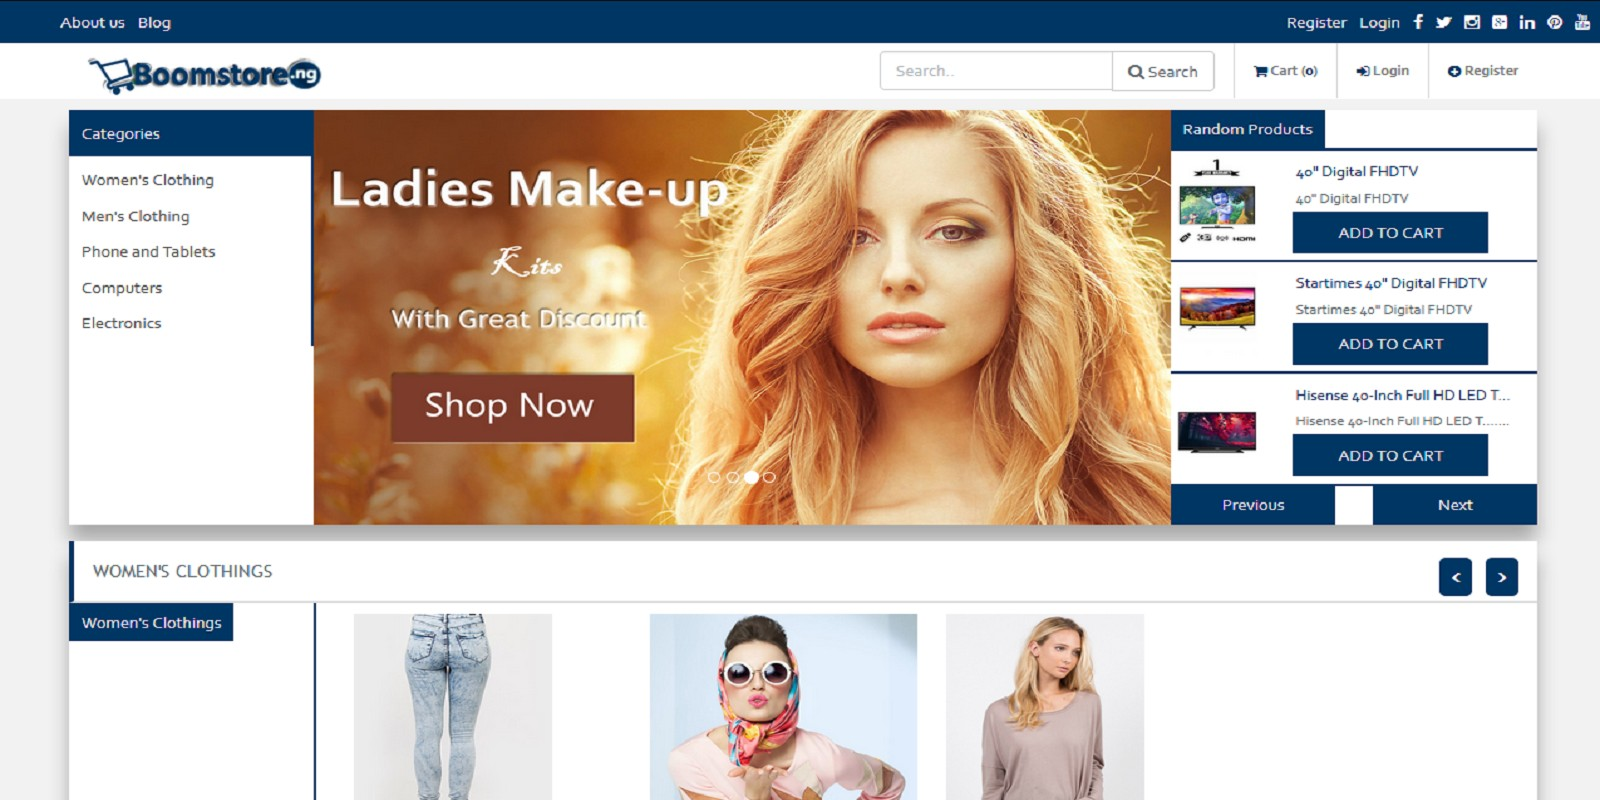 Boomstore - eCommerce System image loading